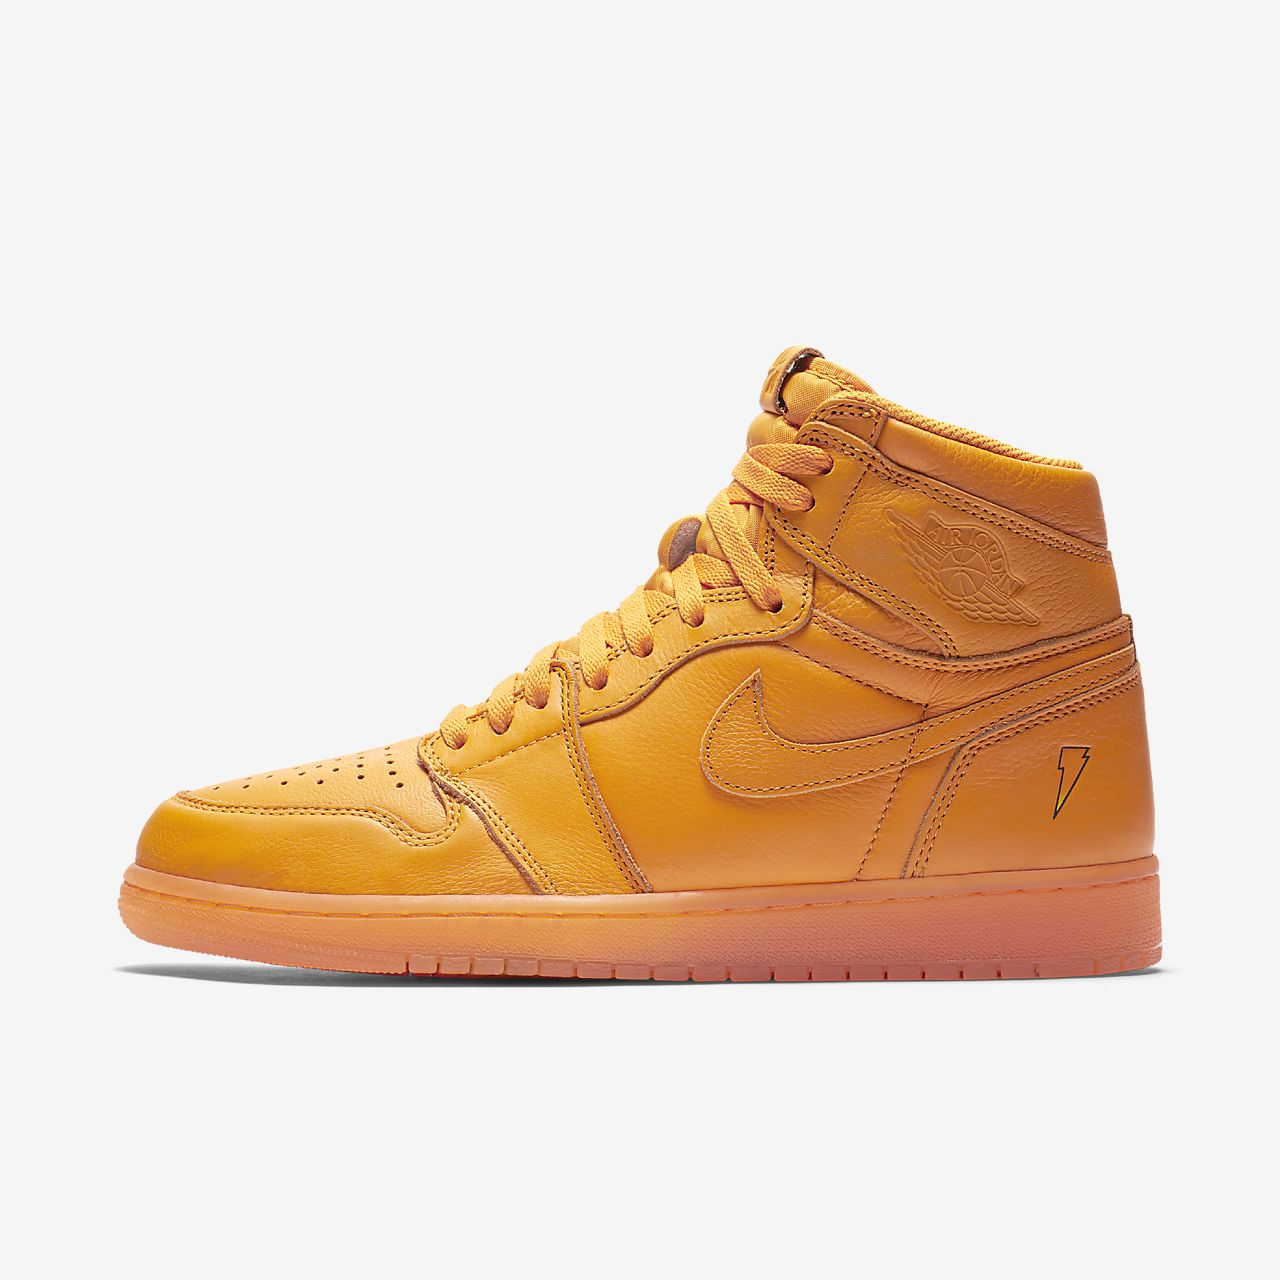 los angeles 7f4f2 cf604 Air Jordan 1 Retro High OG Orange